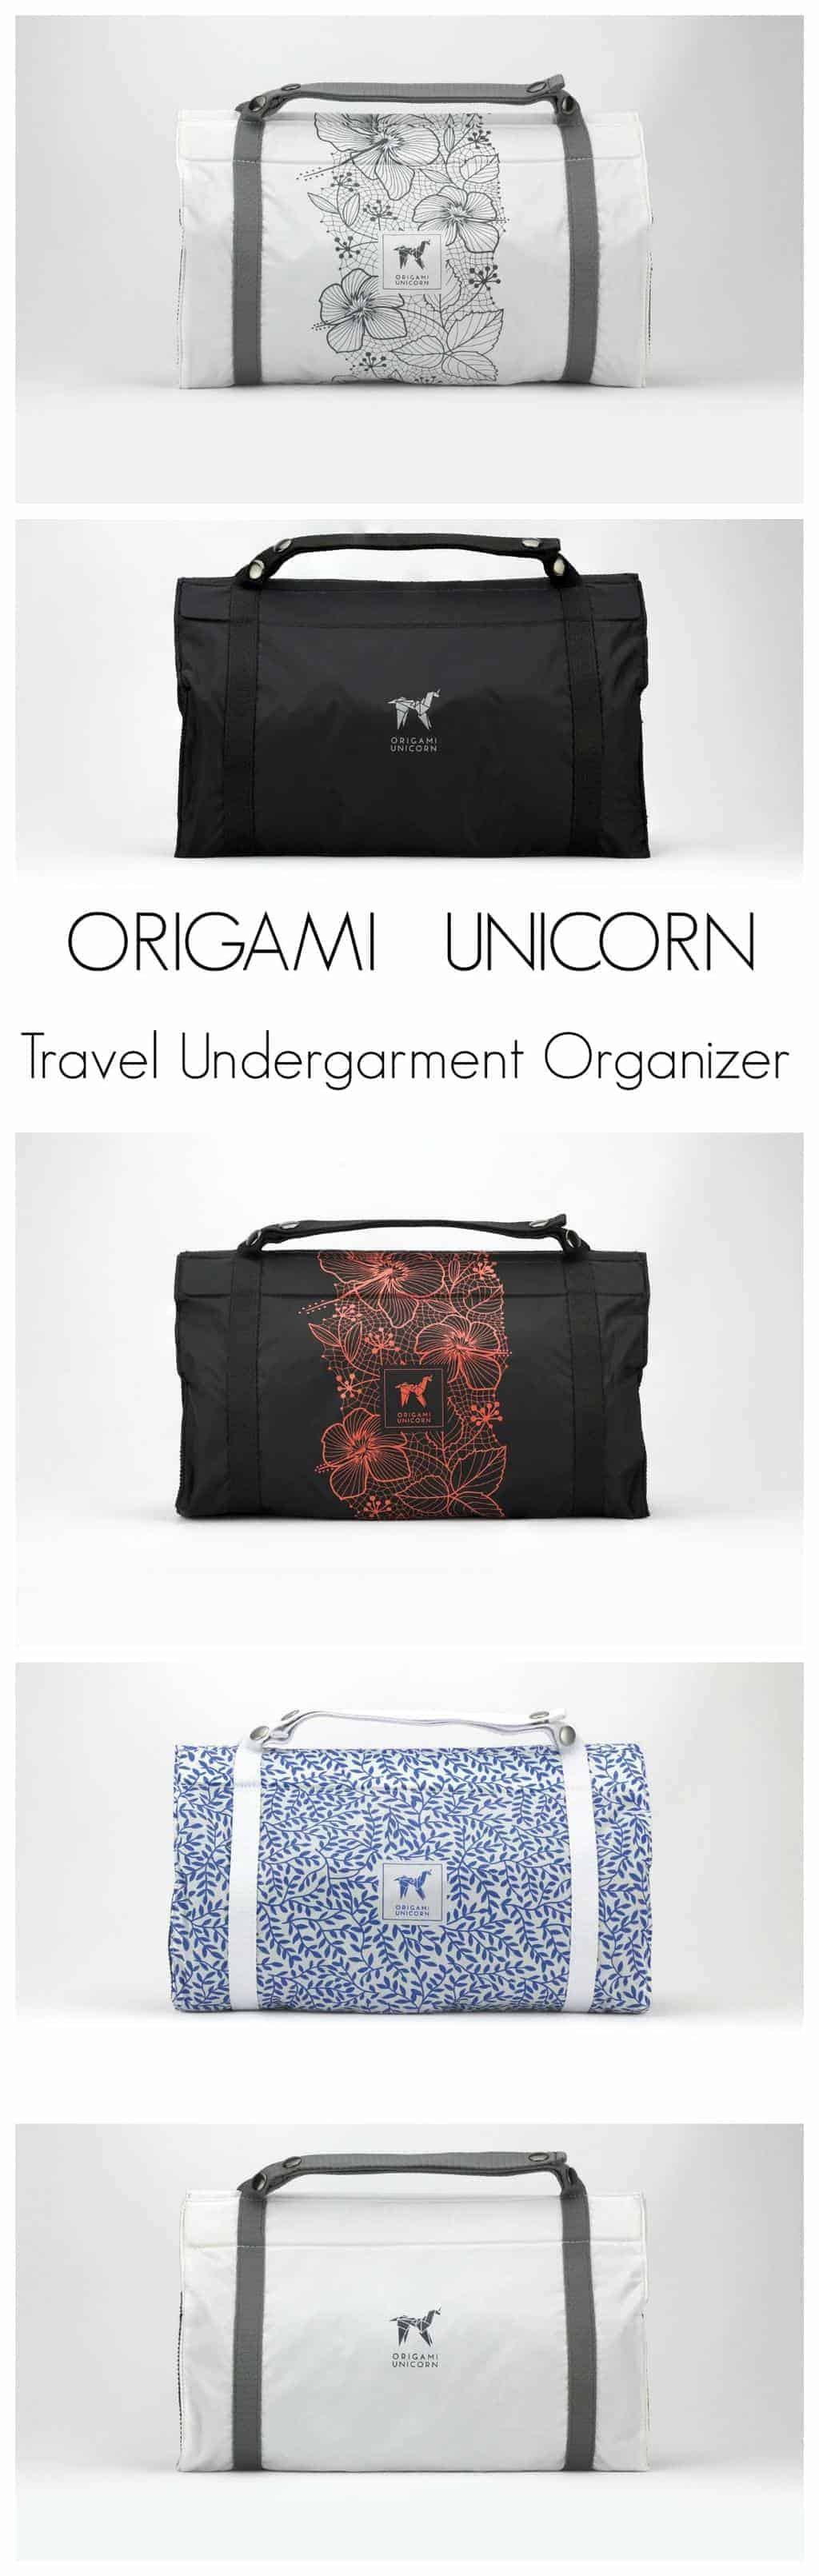 Origami Unicorn Travel Undergarment Organiser Review